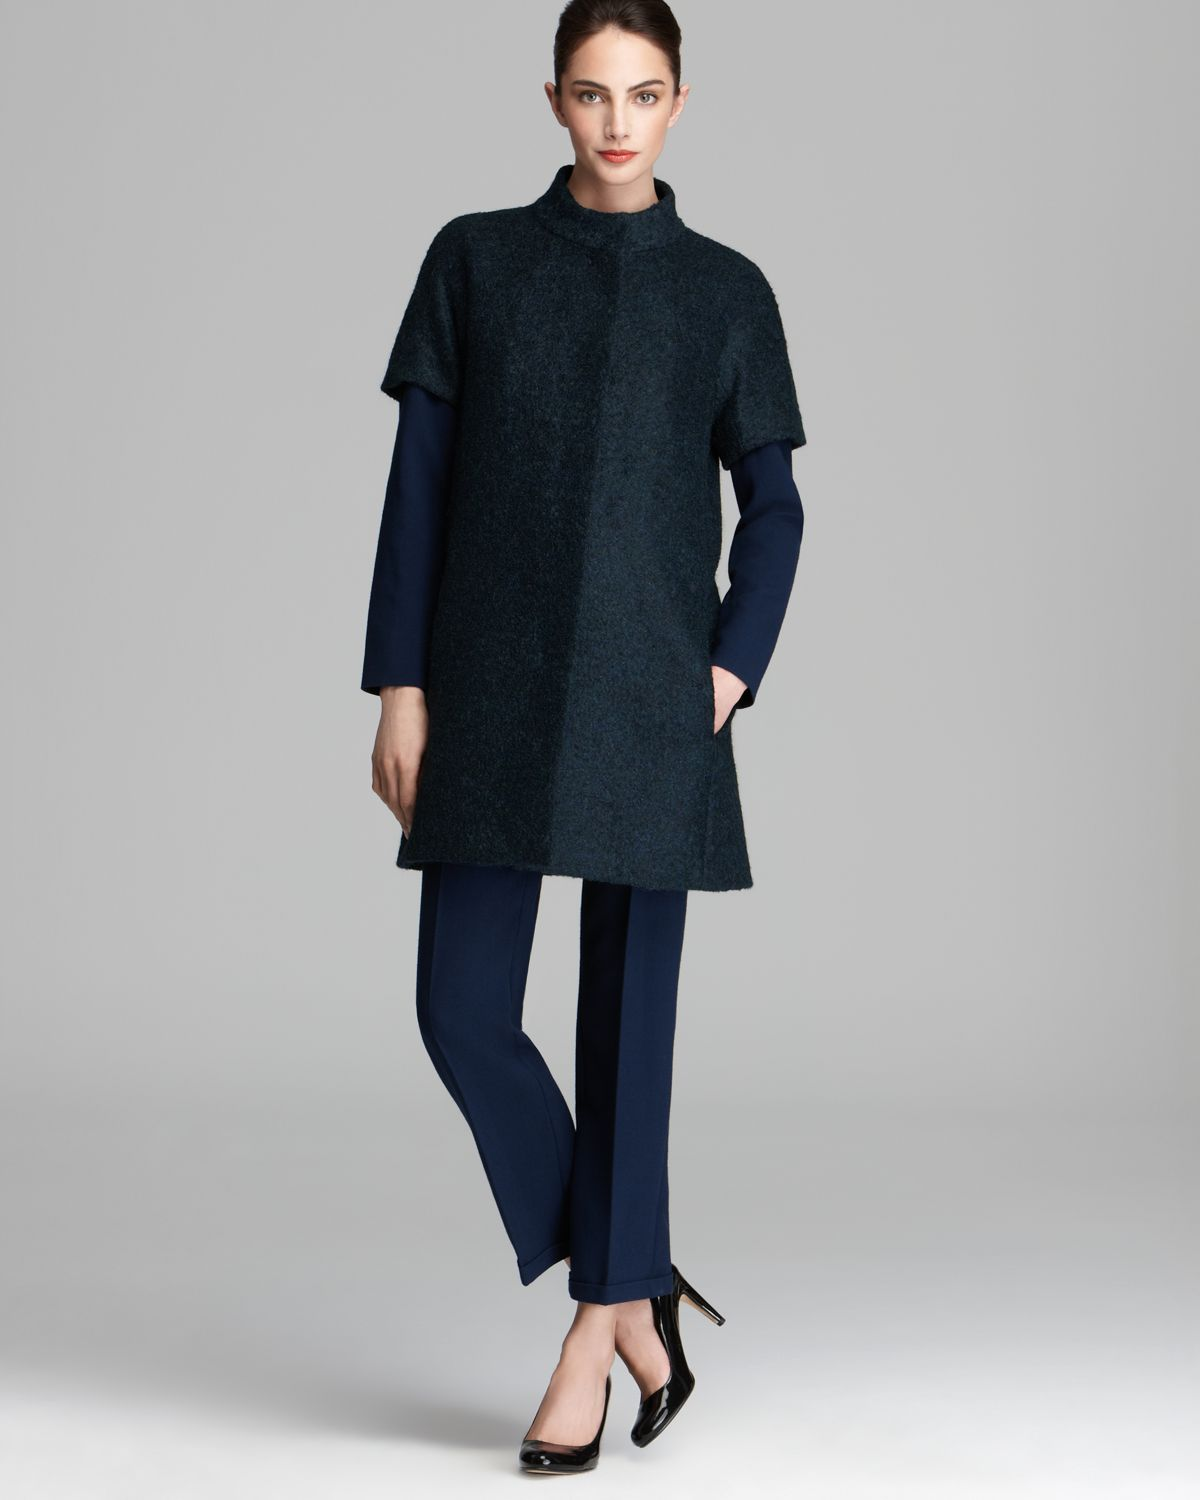 Max mara studio Knut Short Sleeve Coat in Green | Lyst